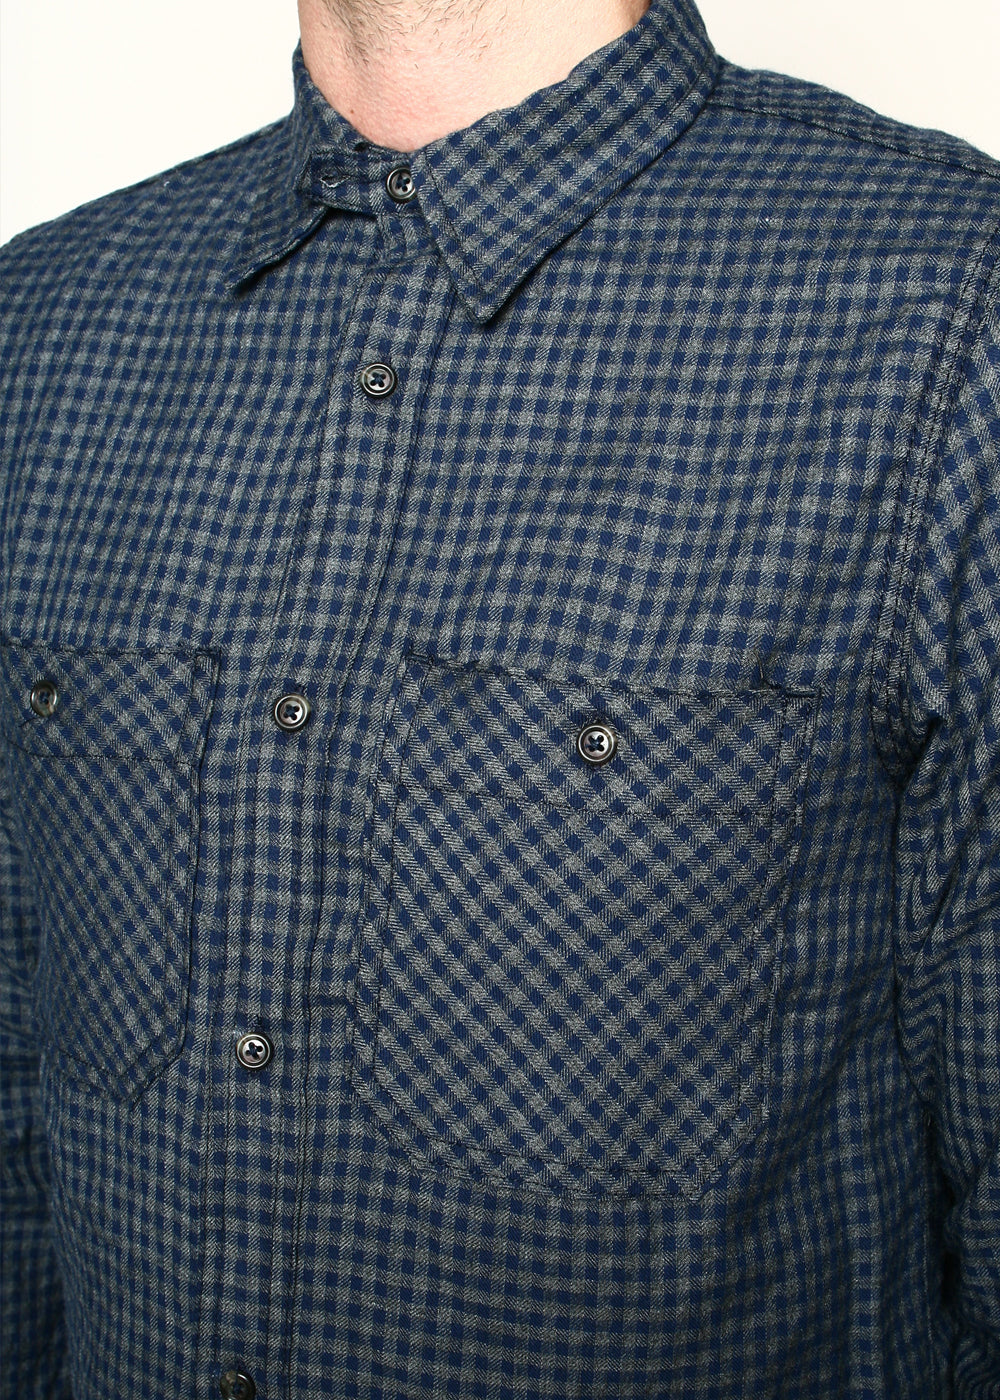 New Arrivals Tagged Made in USA - Mildblend Supply Co